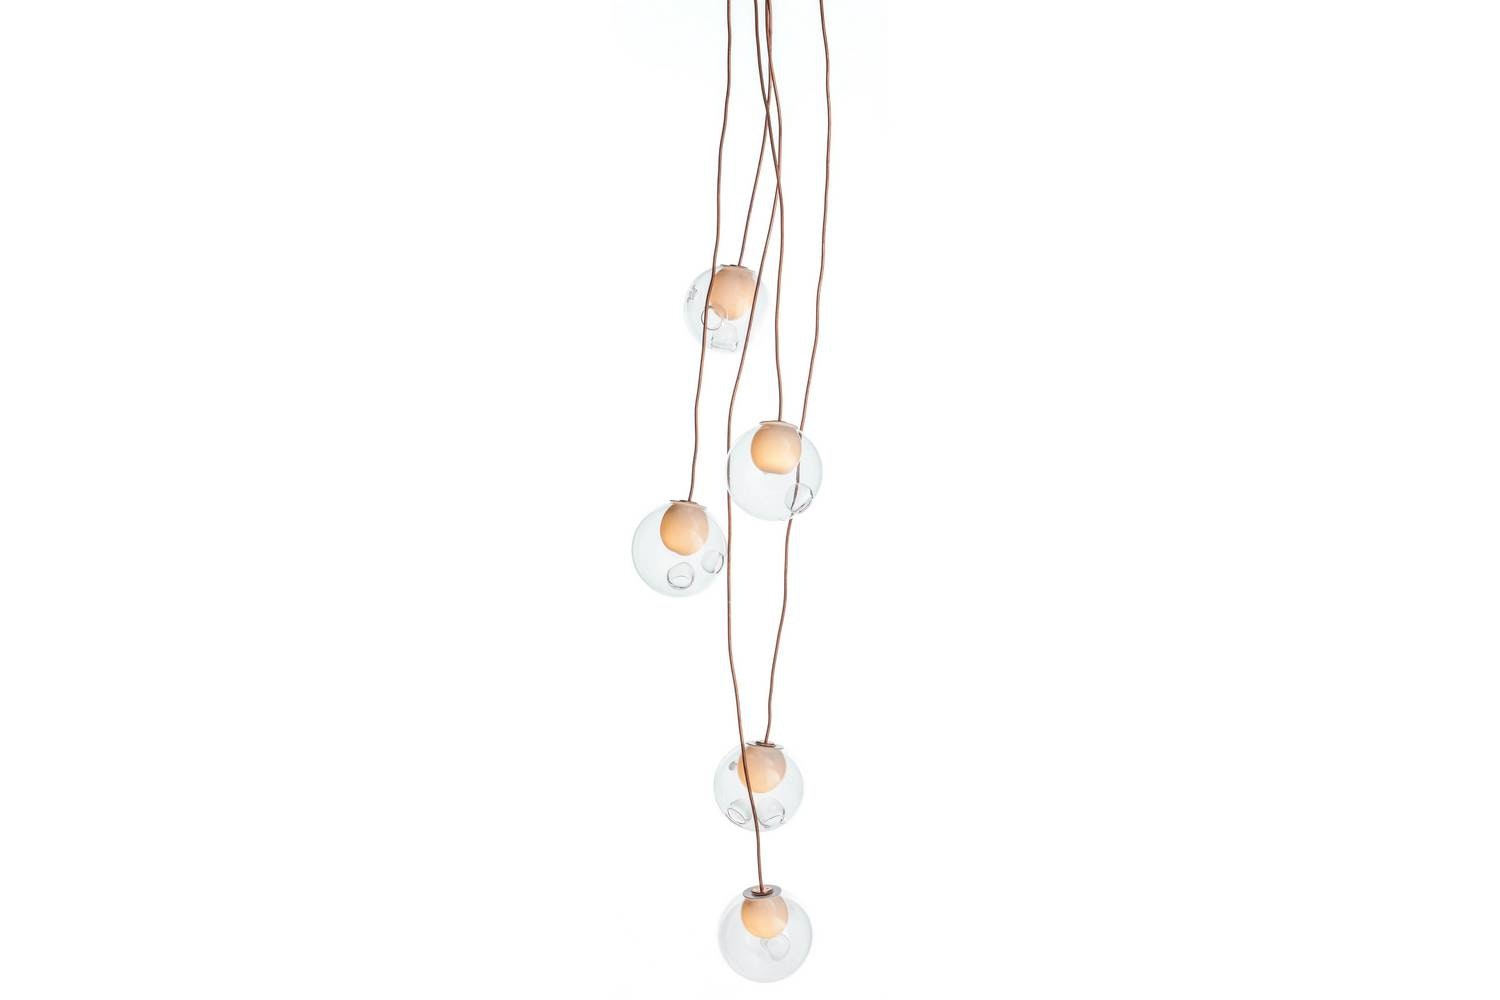 28.5 Copper Suspension Lamp by Omer Arbel for Bocci